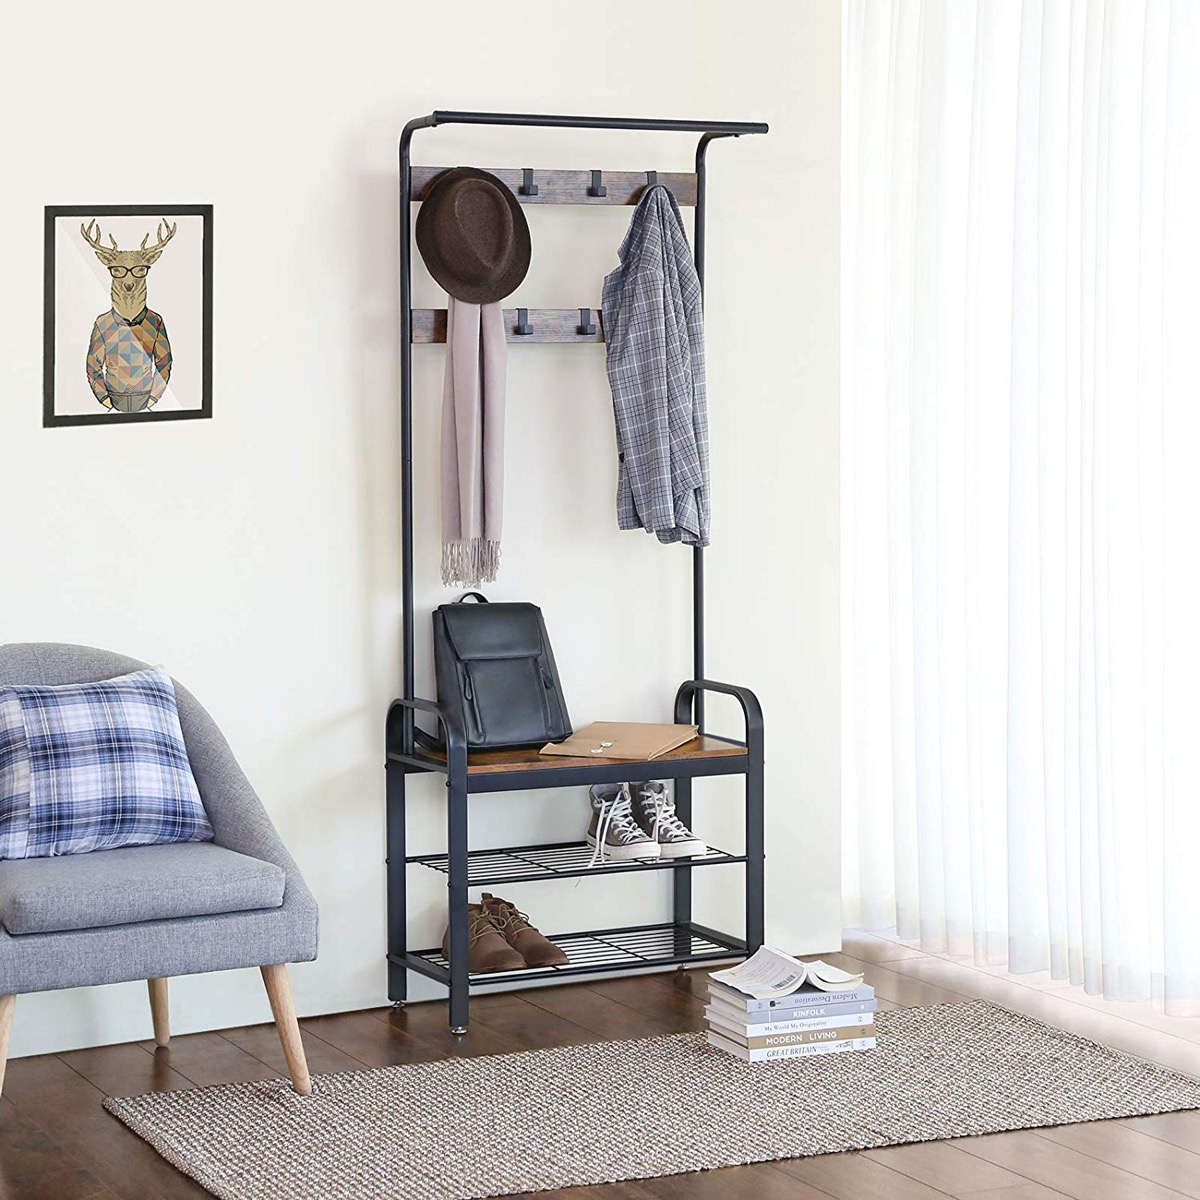 hallway-bench-seat-with-coat-rack-lower-shelves-and-coat-hooks